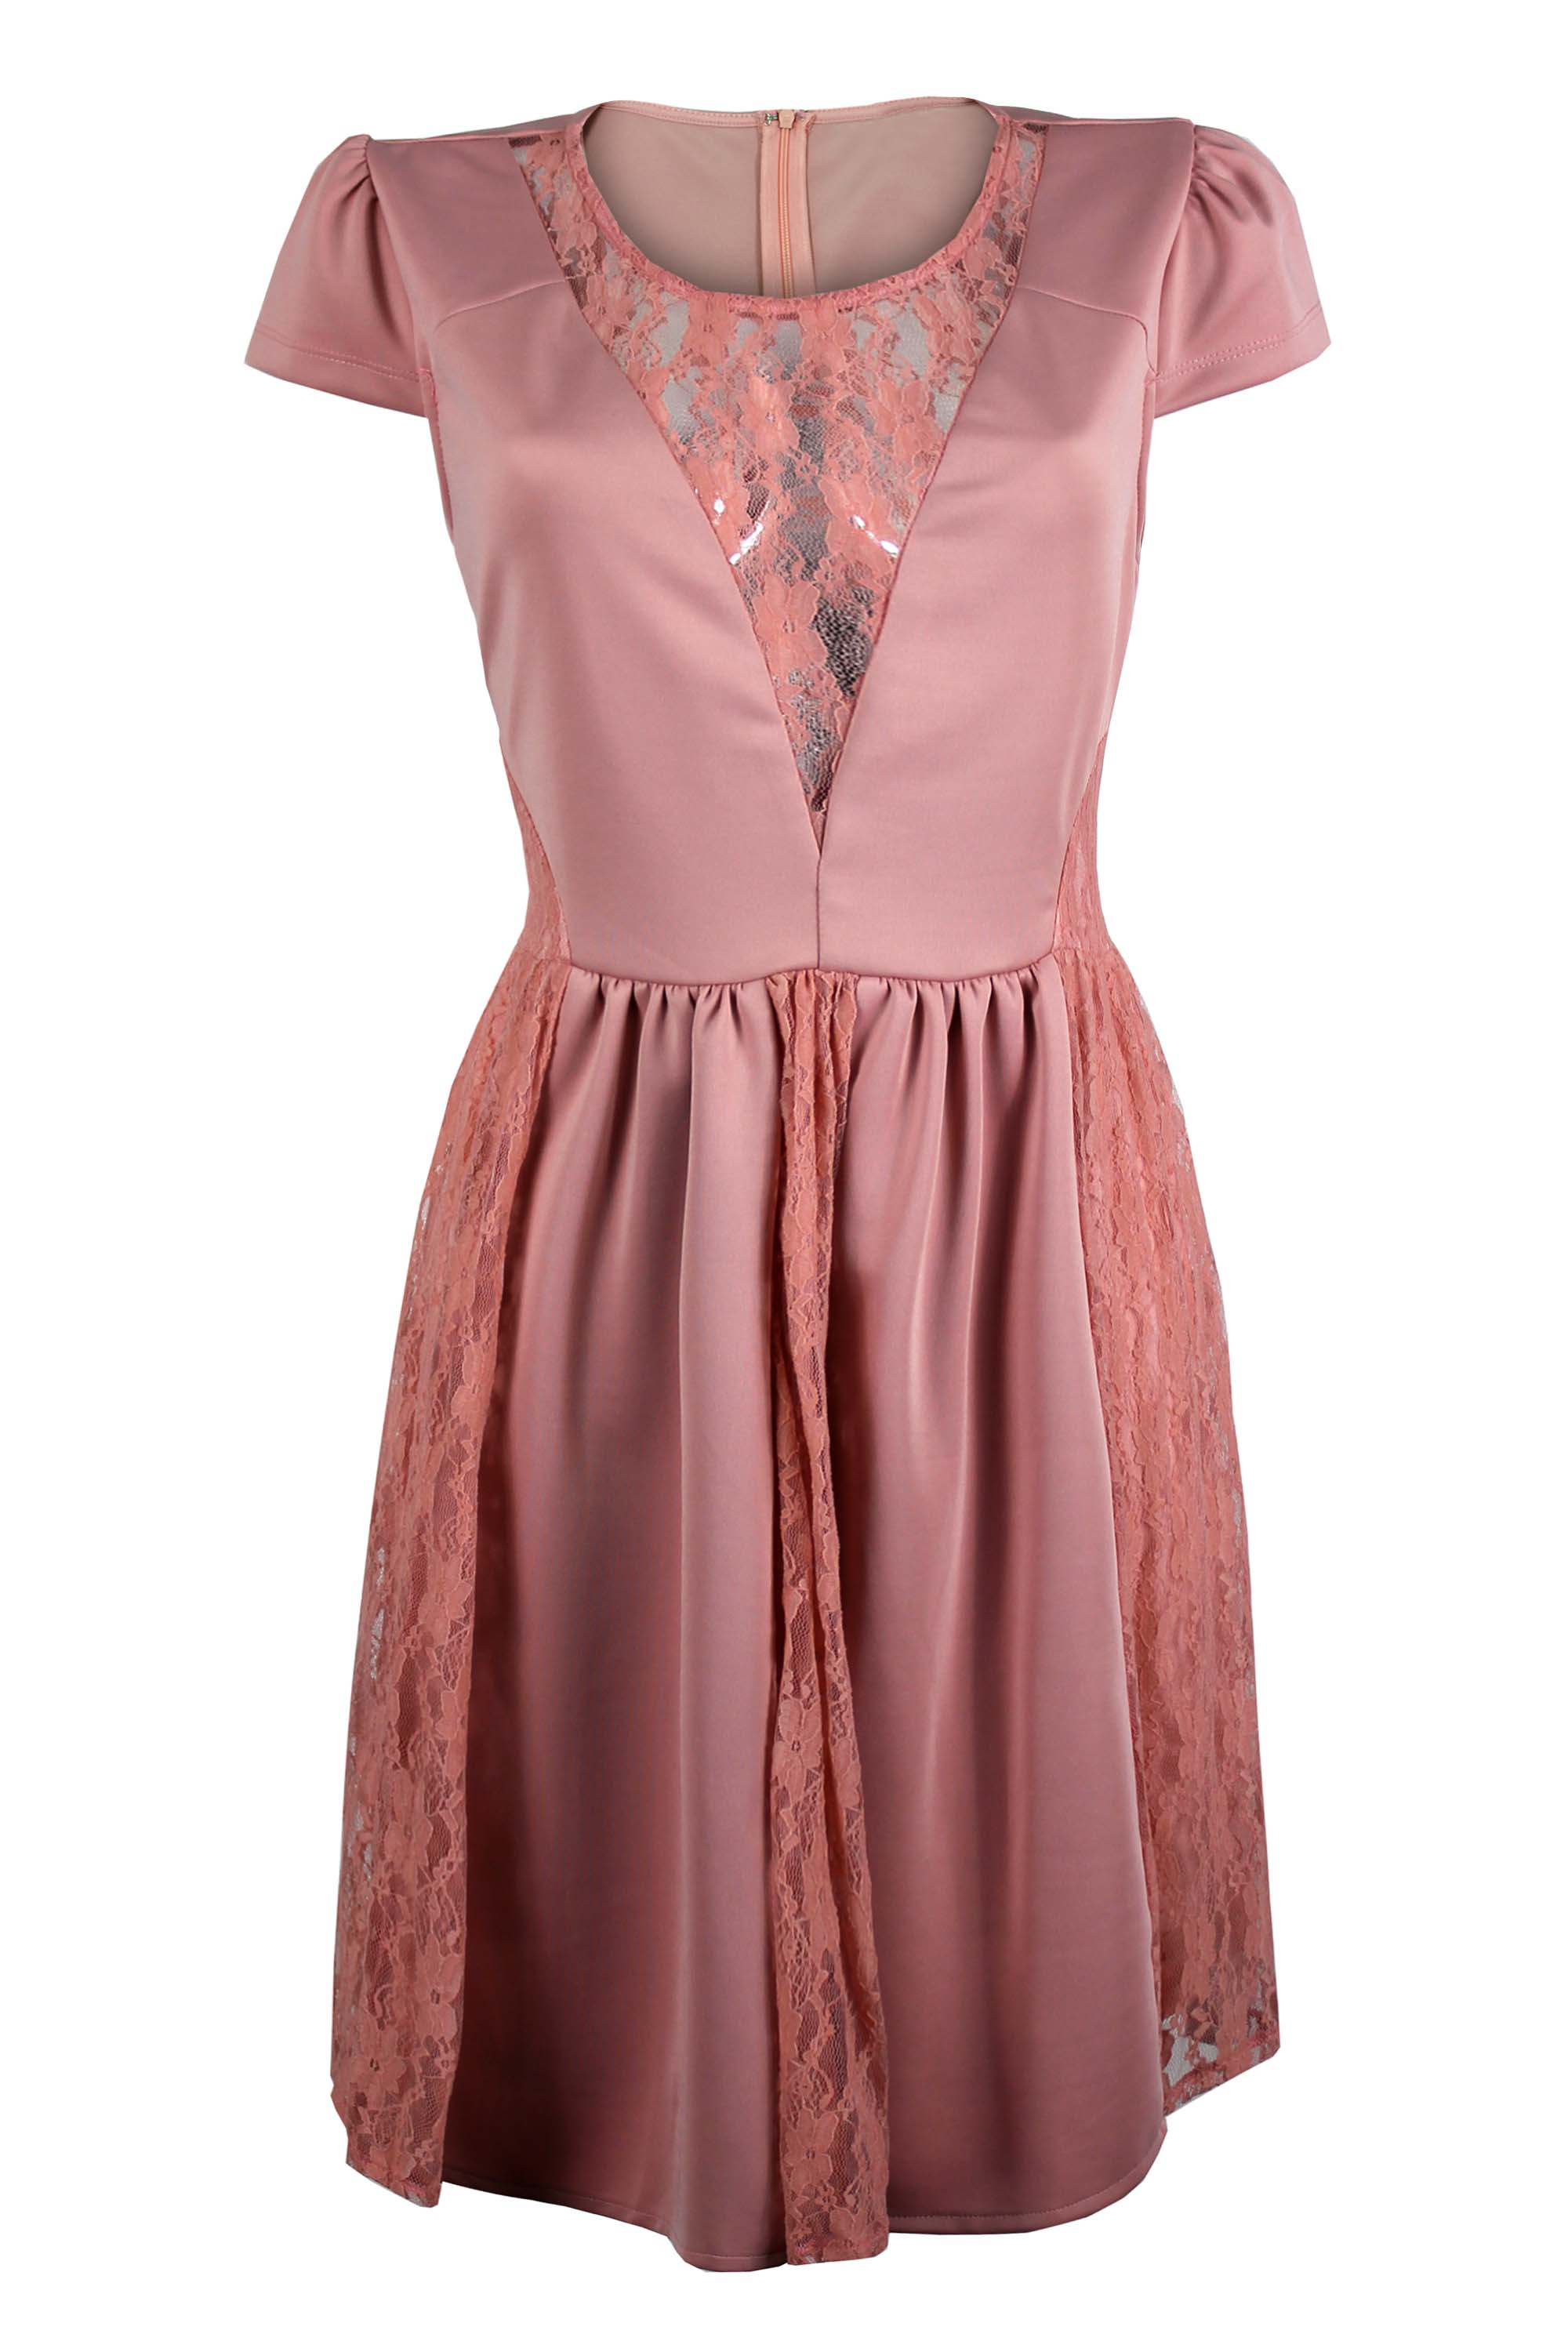 Ladies Womens Baby Pink Lace Contrast Cap Sleeve Dress Ebay